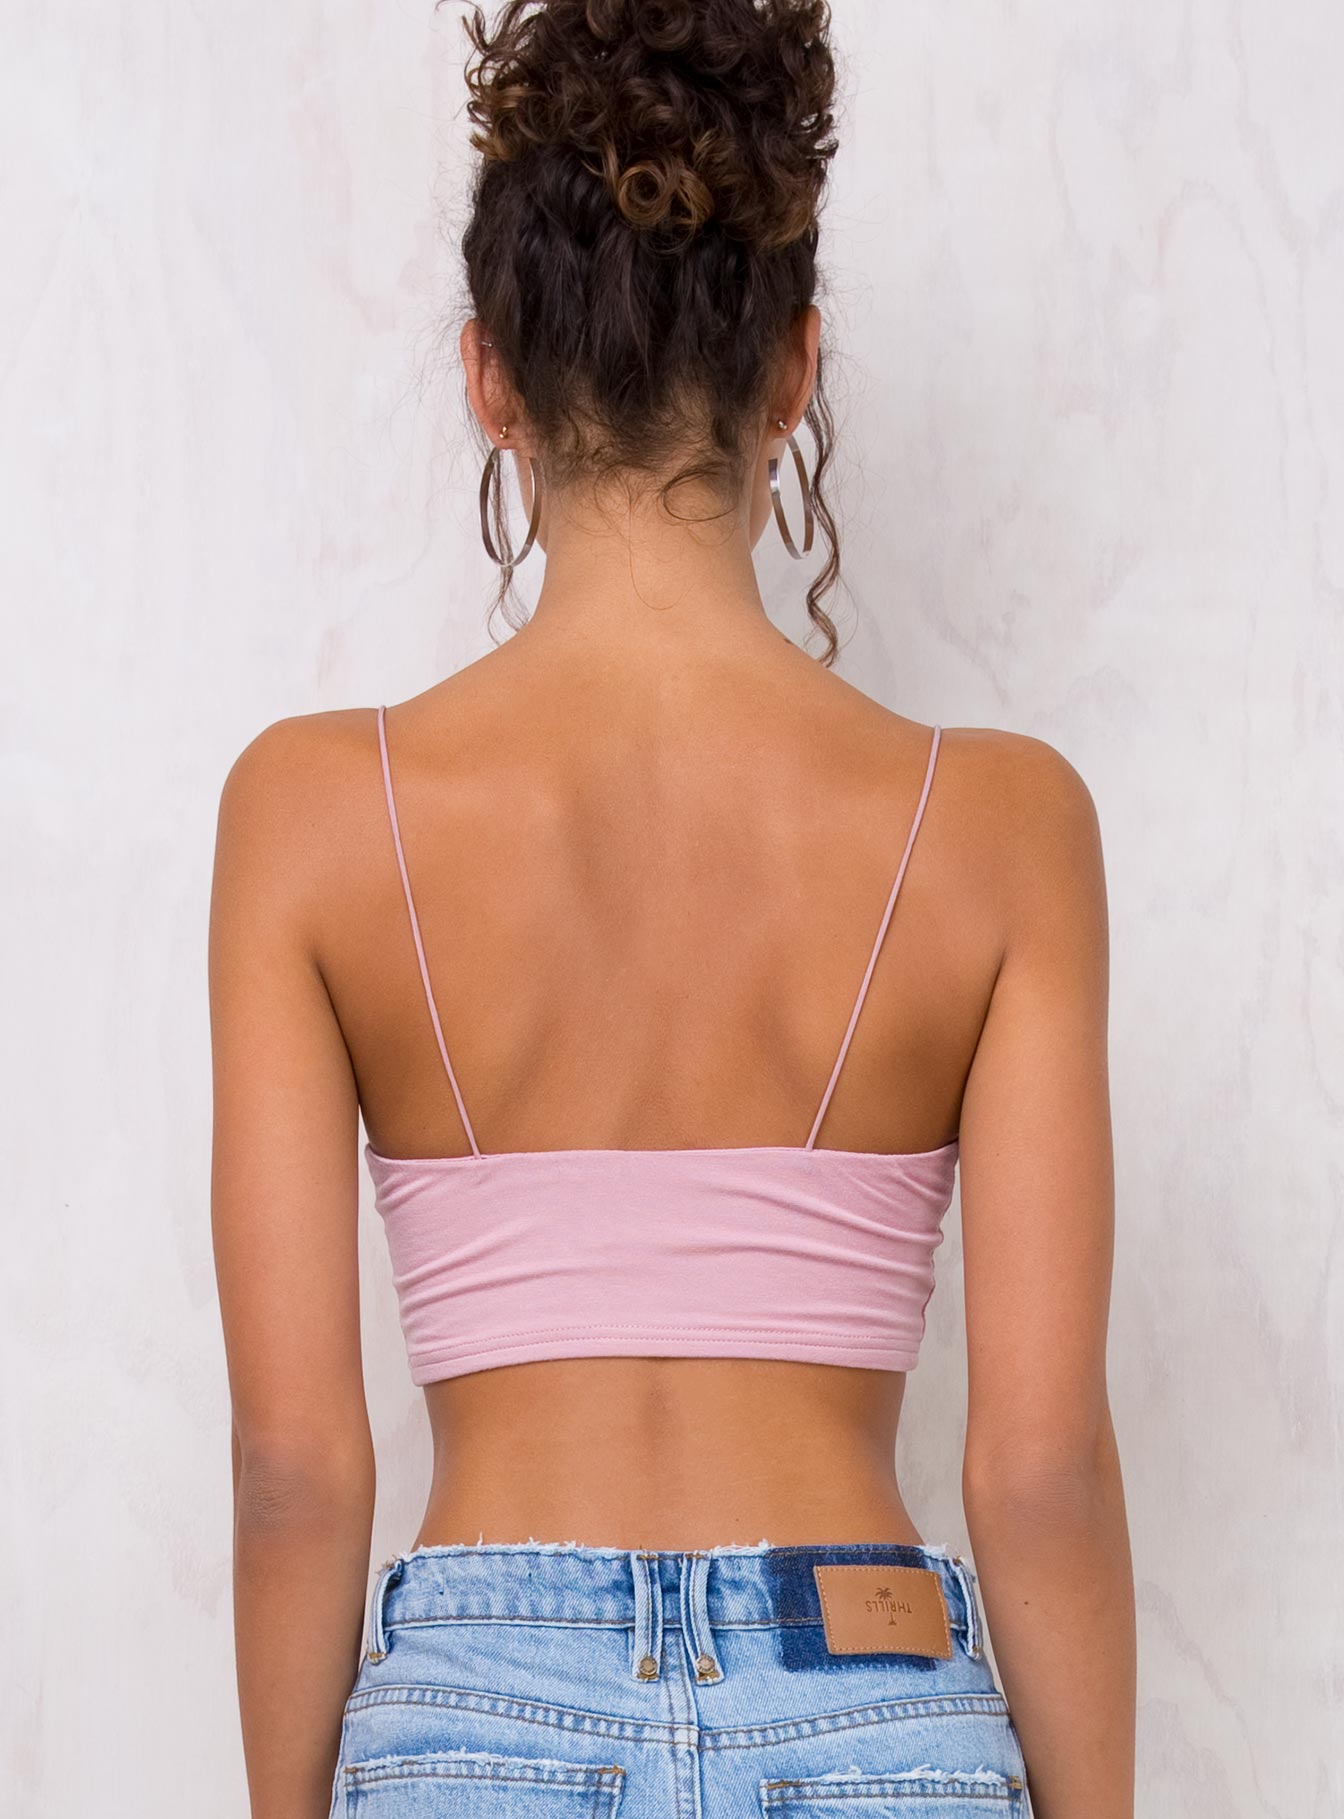 Fine China Crop Top Baby Pink